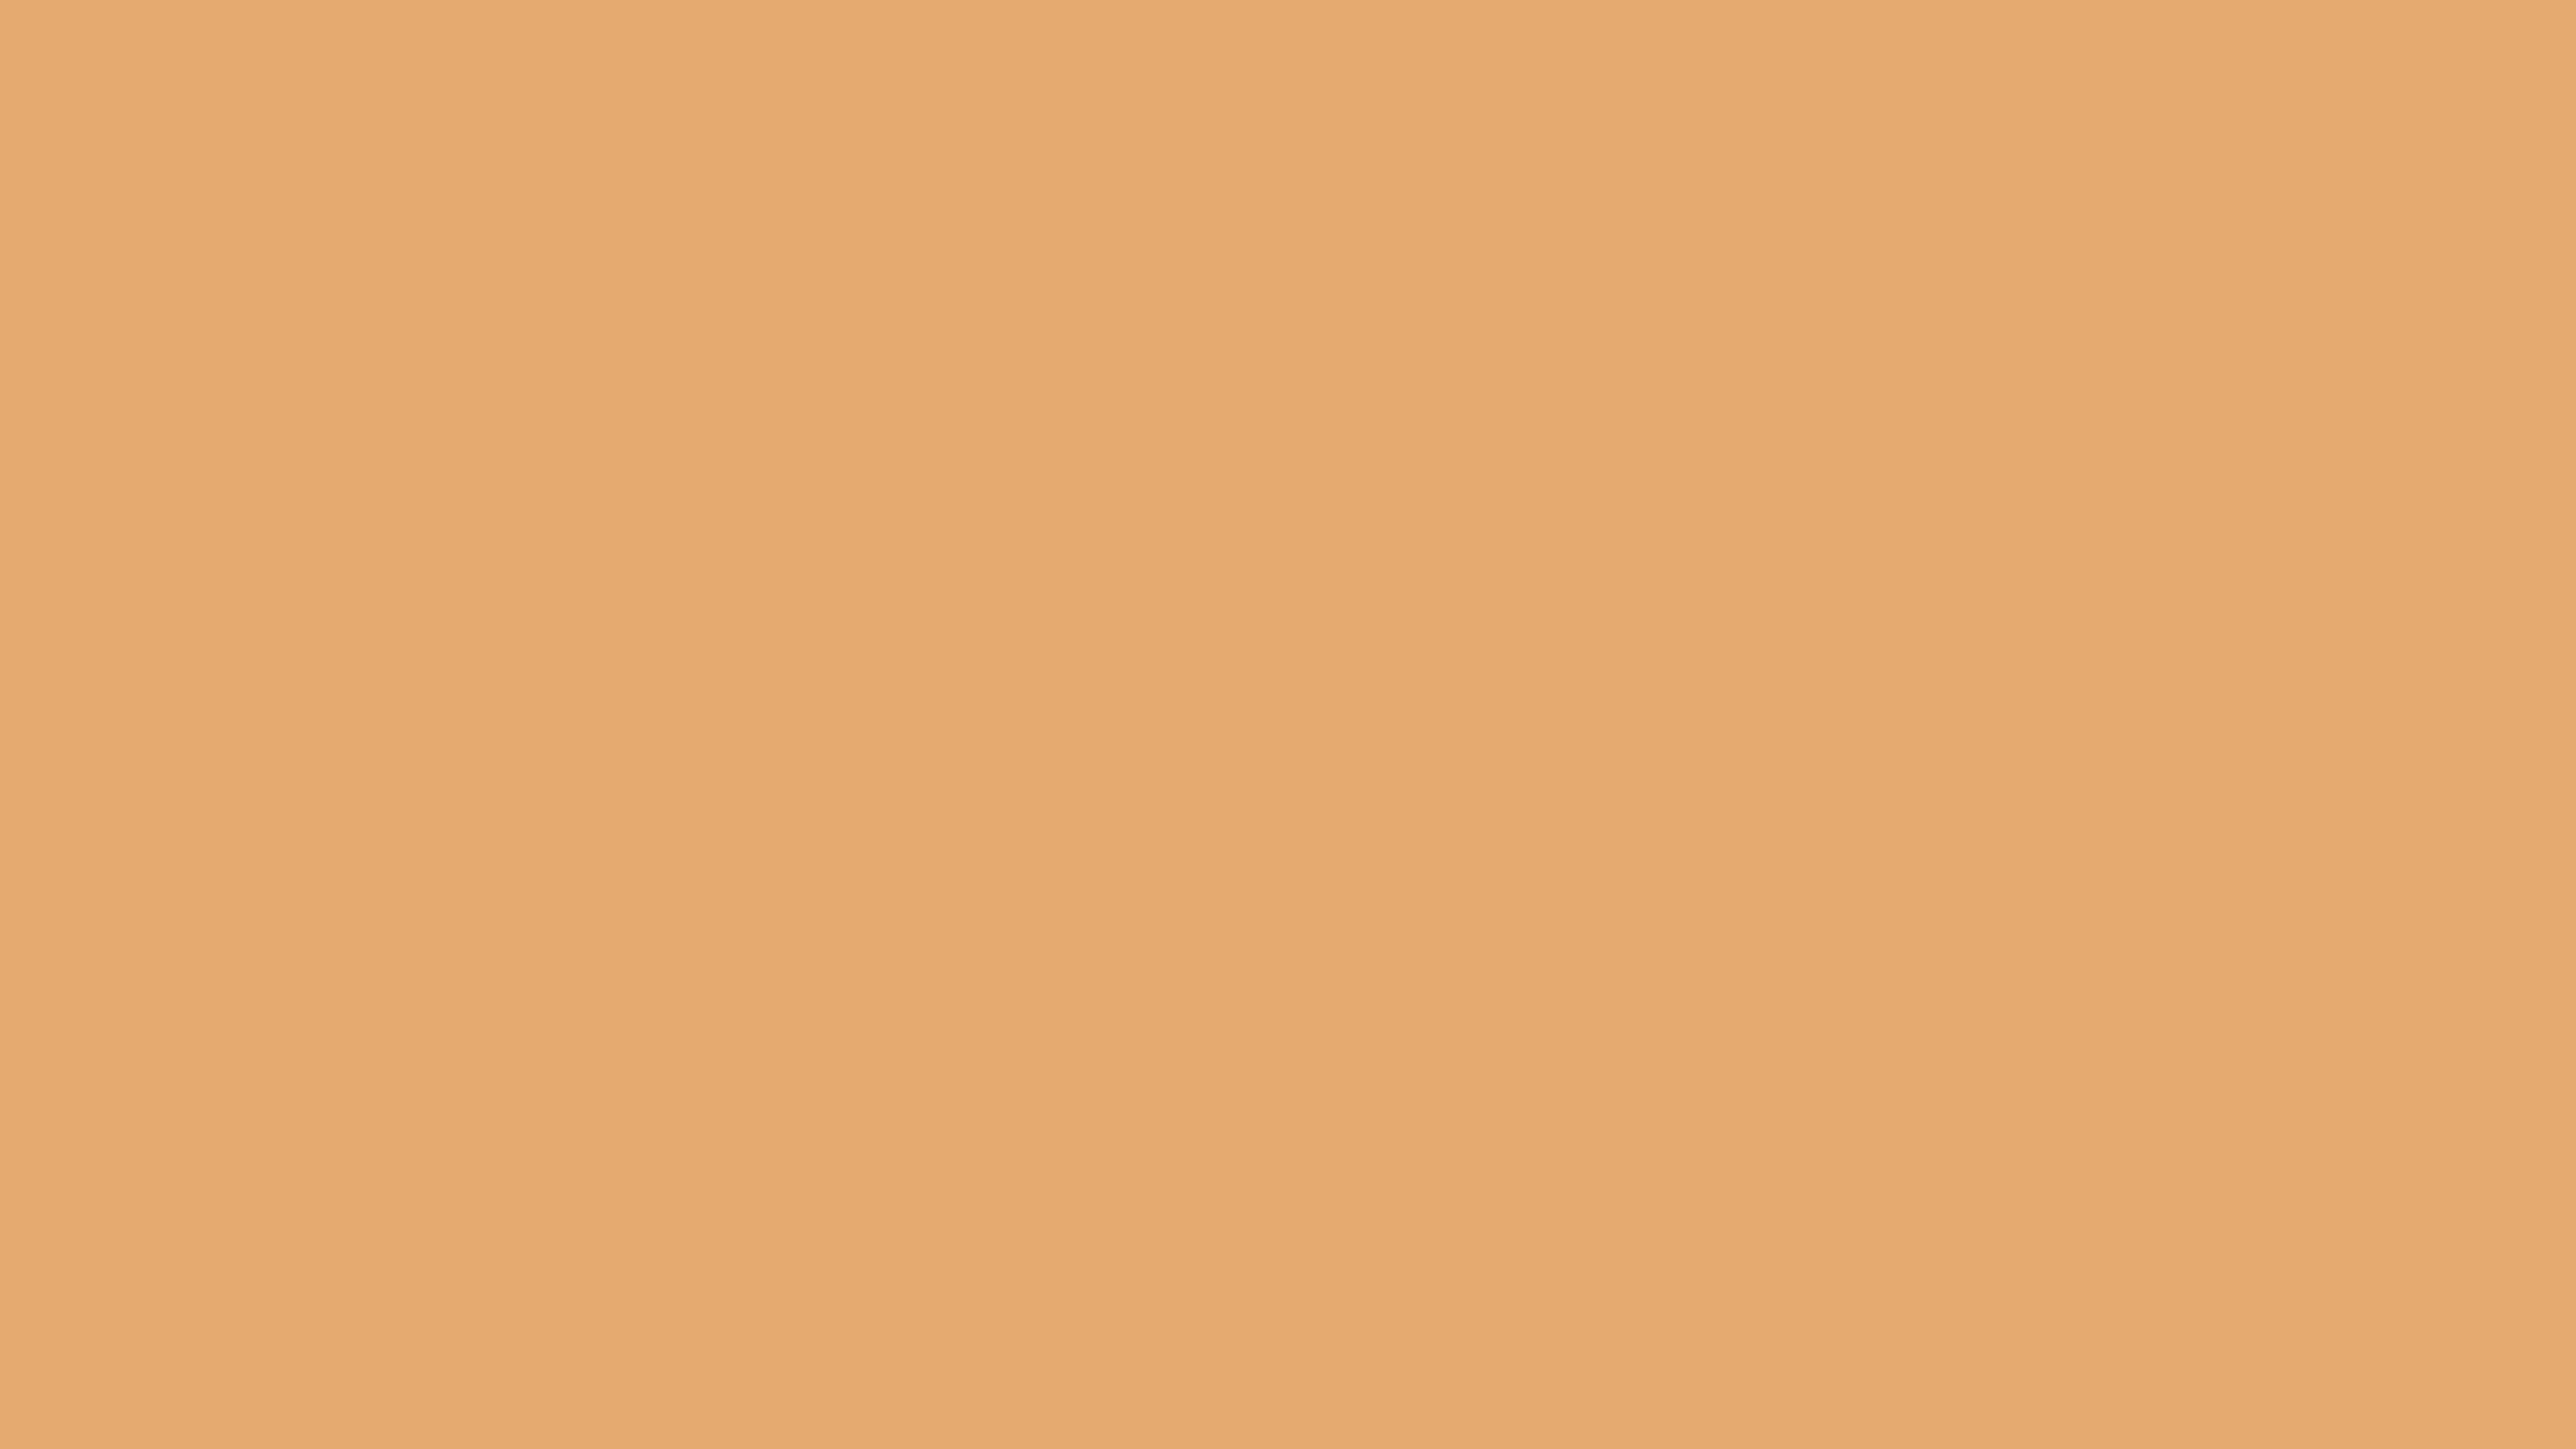 3840x2160 Fawn Solid Color Background